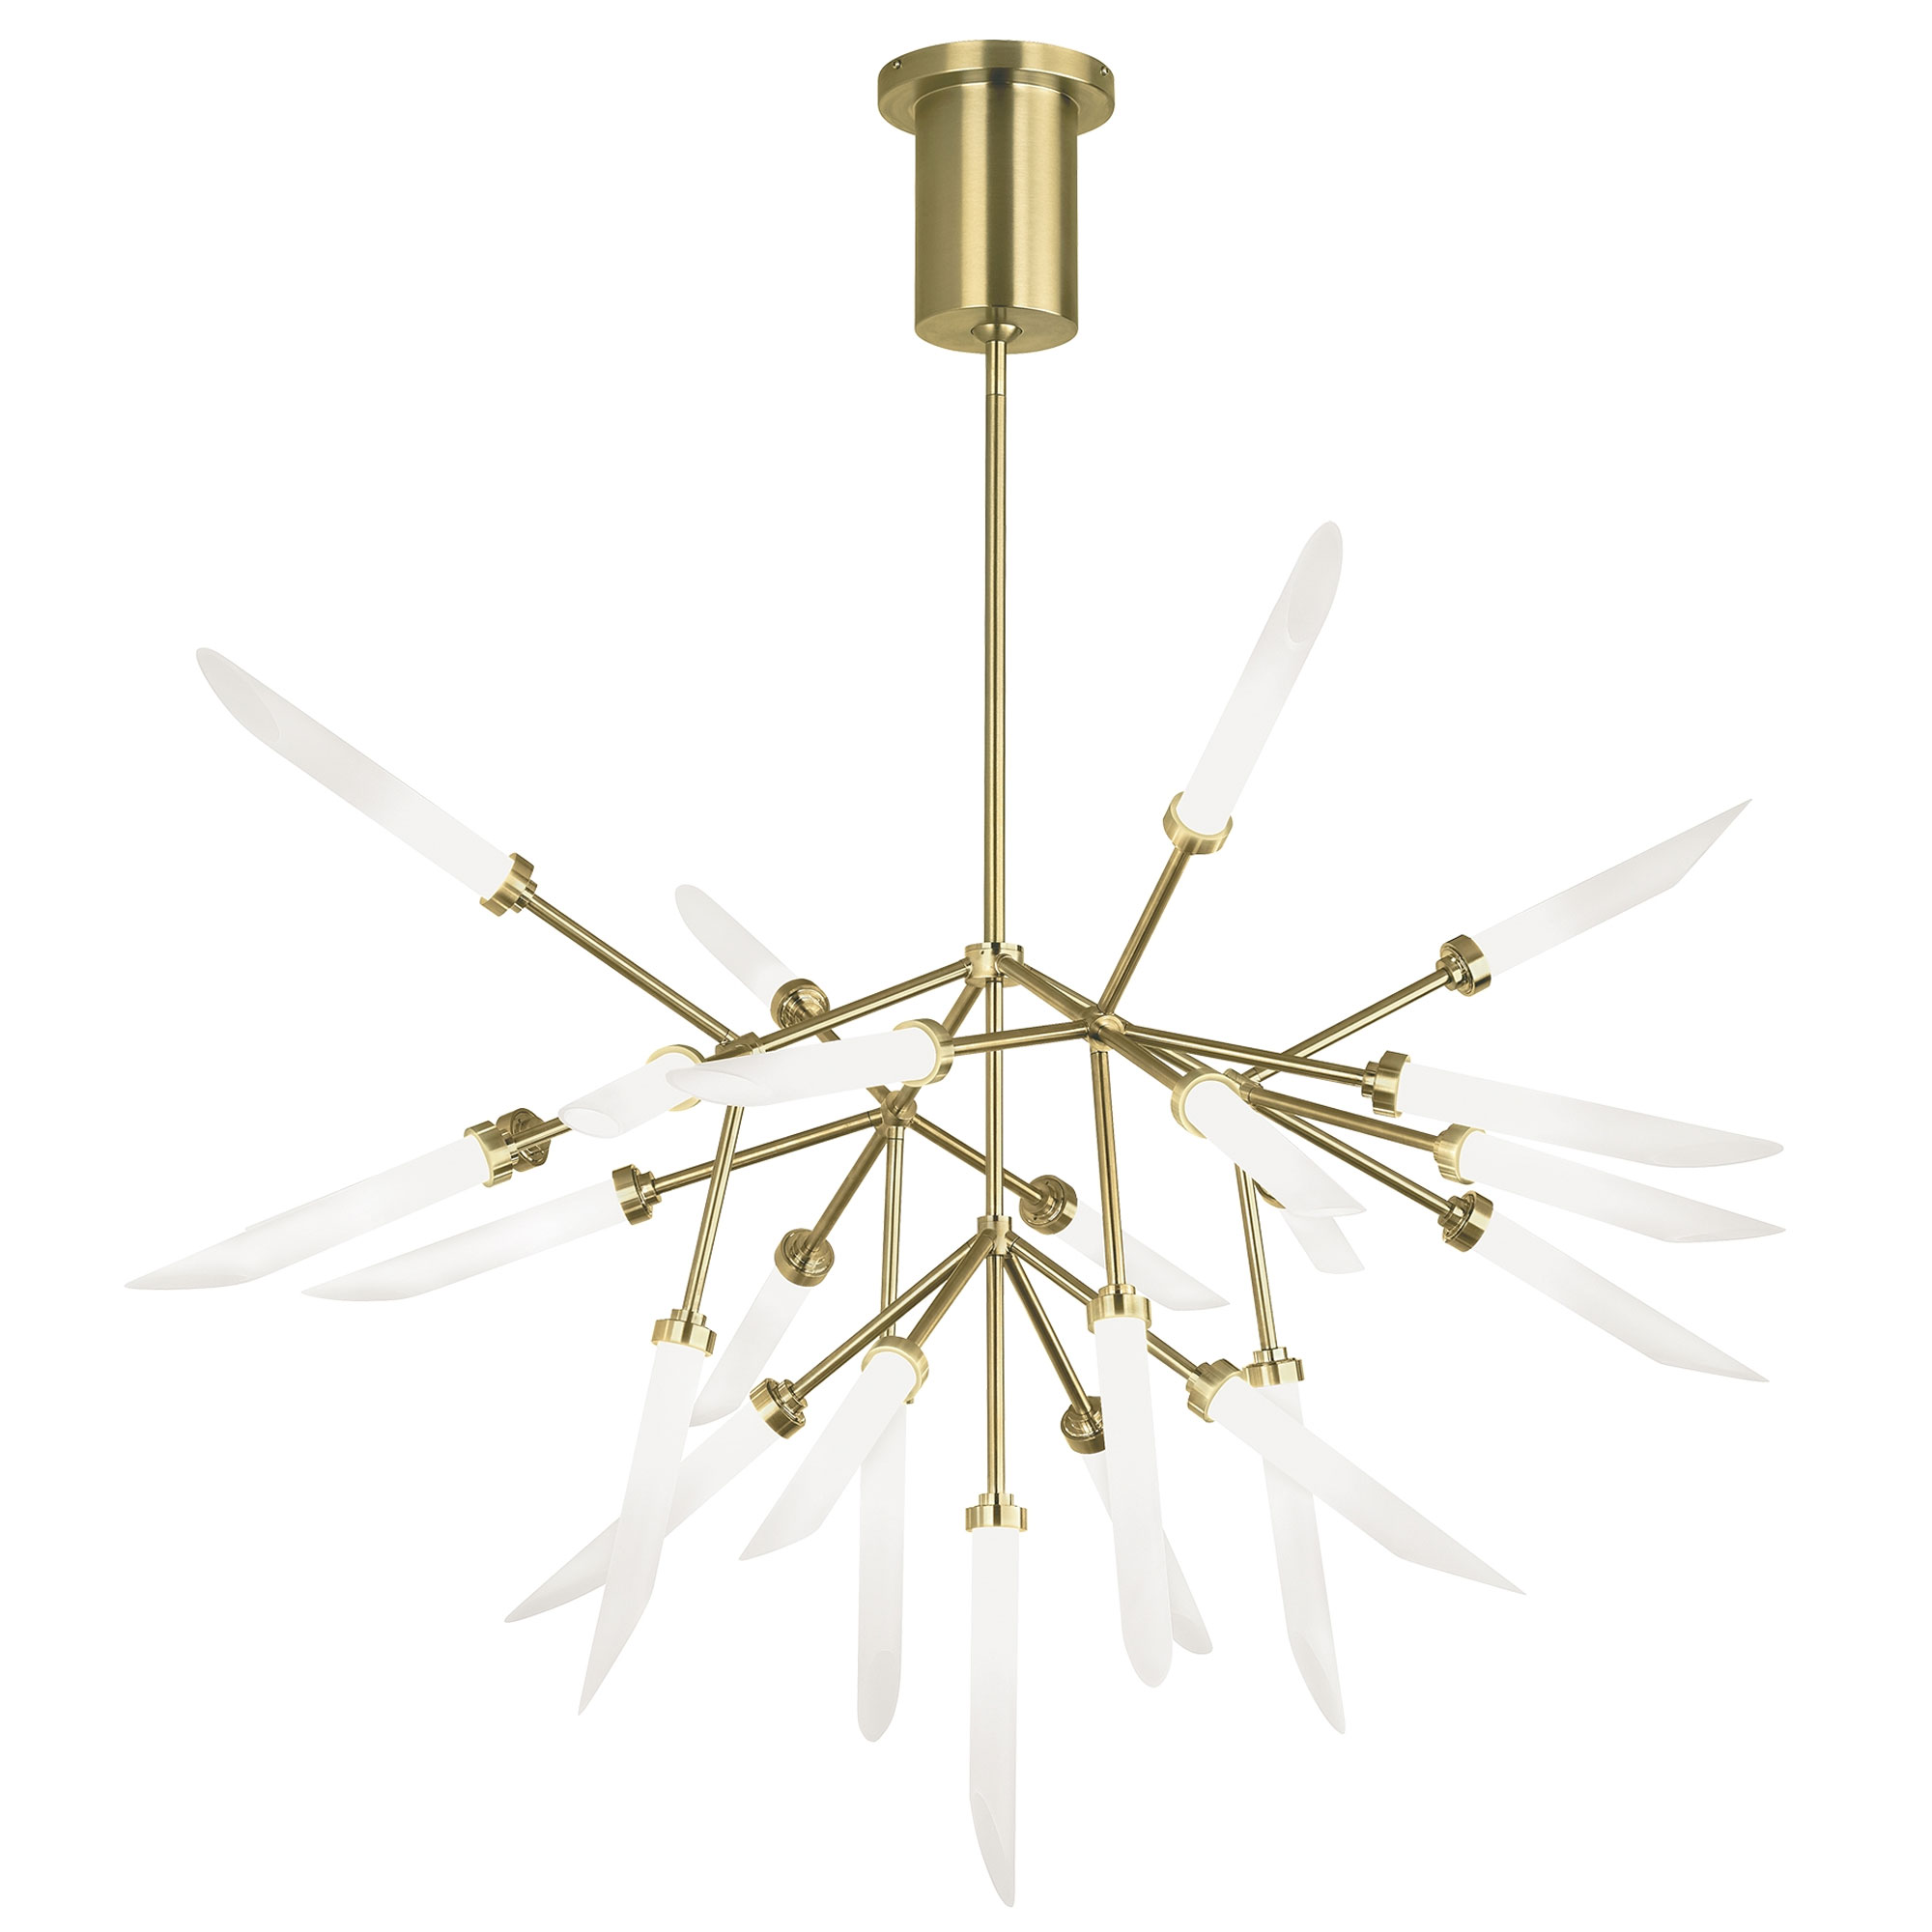 a image rchand modern by chandelier nickel meurice rectangle b chandeliers jonathan images category alt lighting